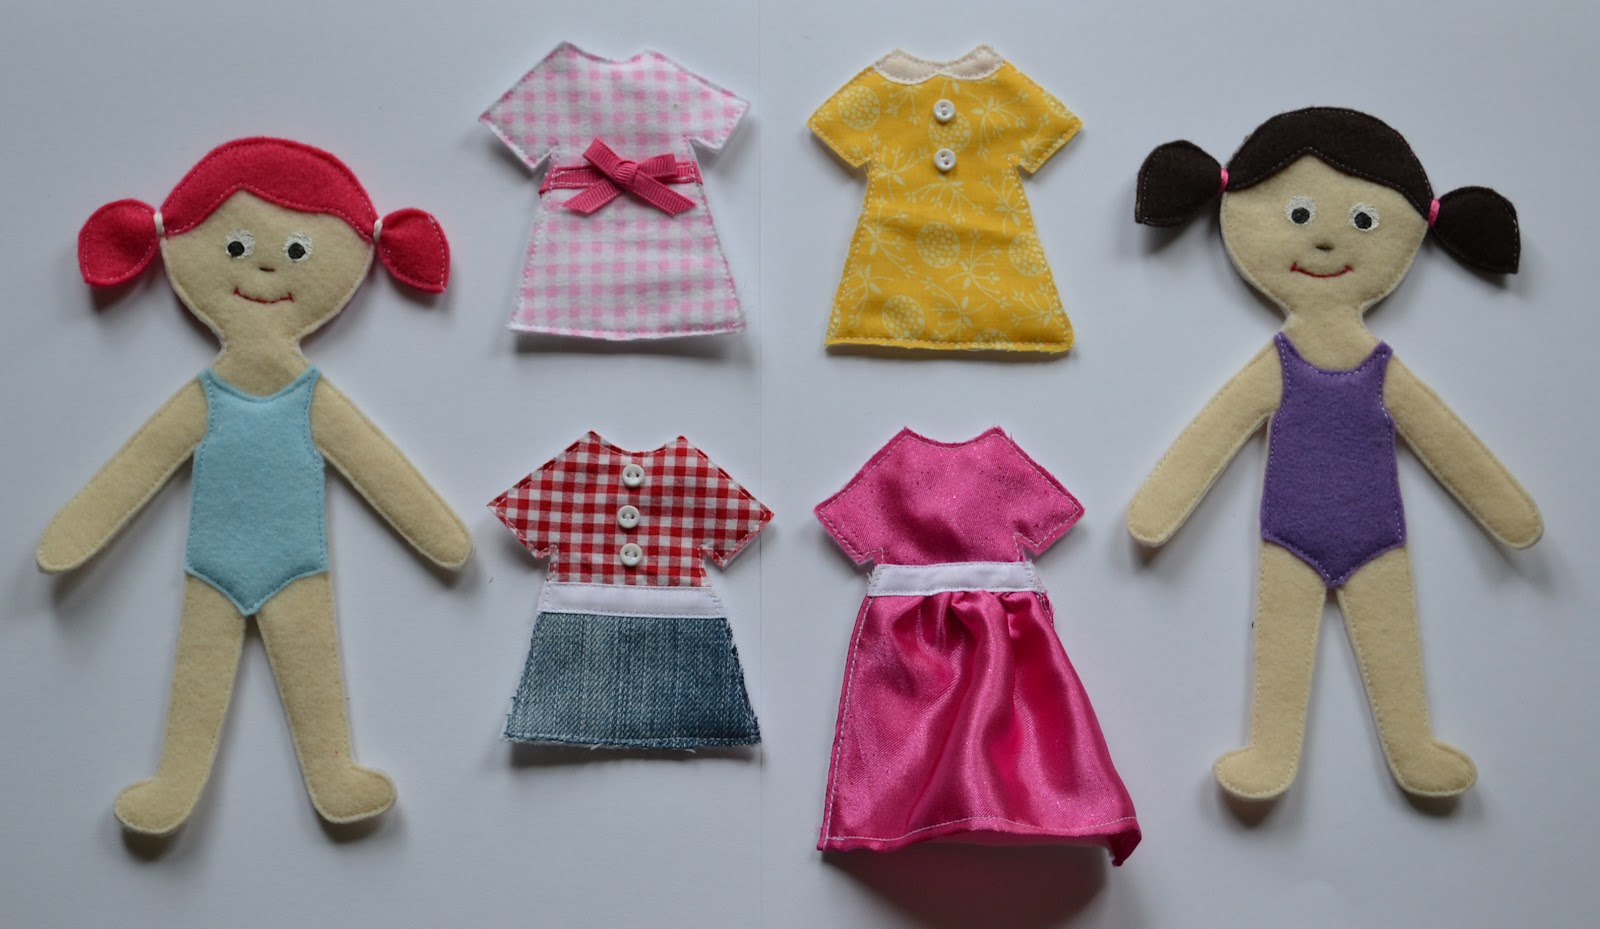 Nap time crafts felt dolls pronofoot35fo Choice Image